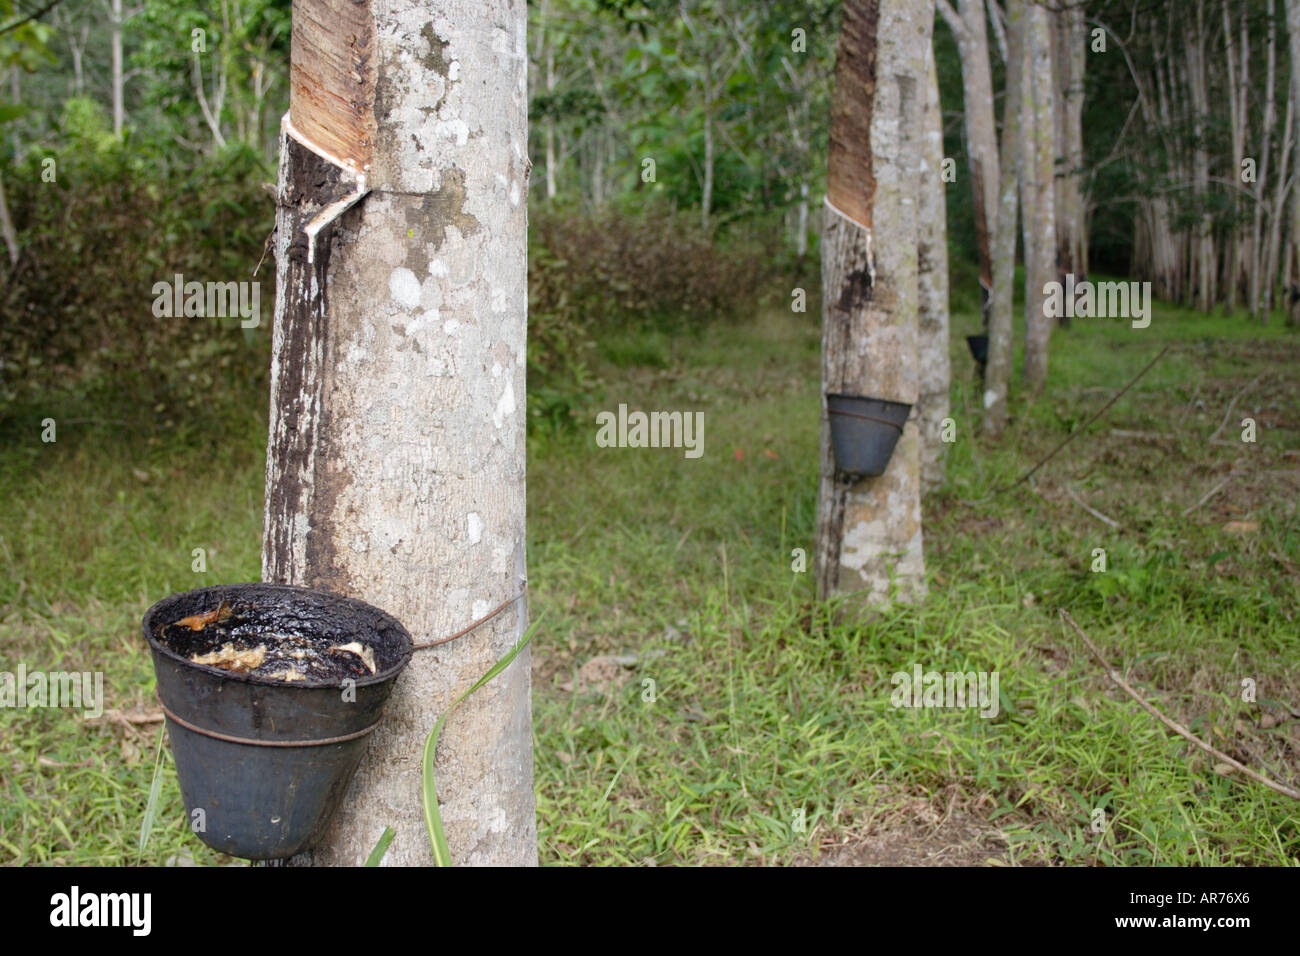 Rubber plantation in Malaysia Stock Photo: 9120805 - Alamy